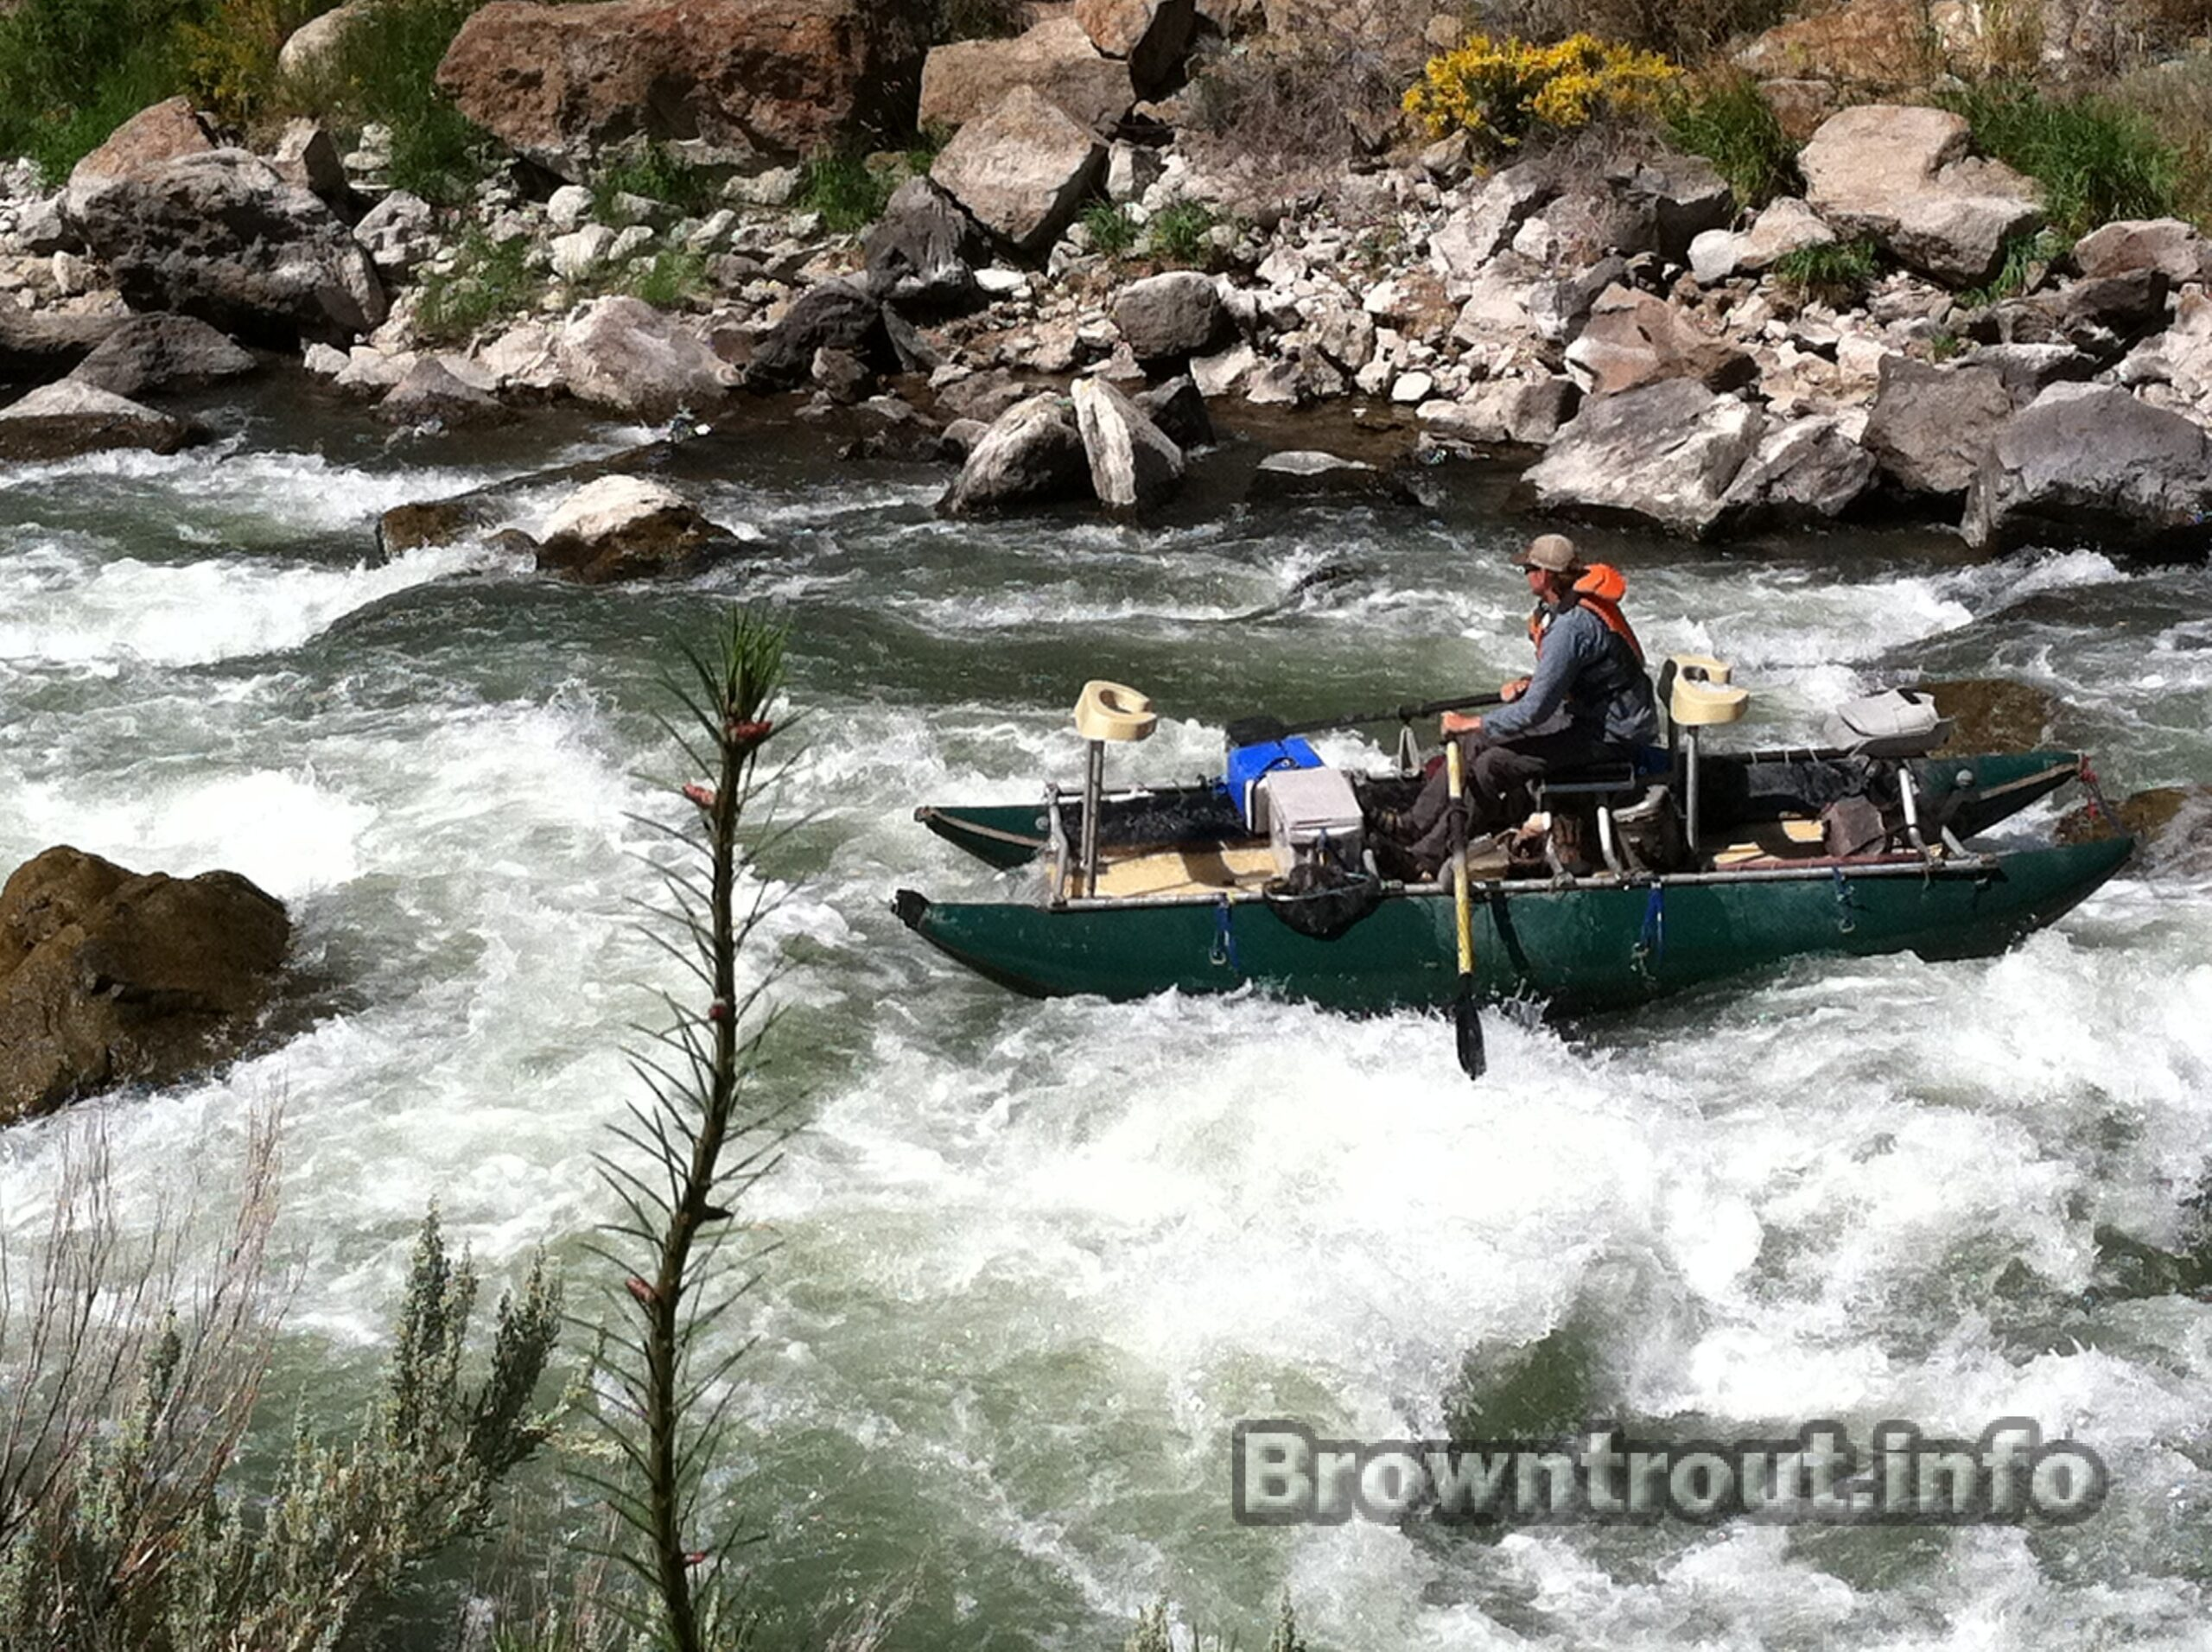 Fly fishing boats rafts drift boats pontoons and tubes for Fly fishing raft